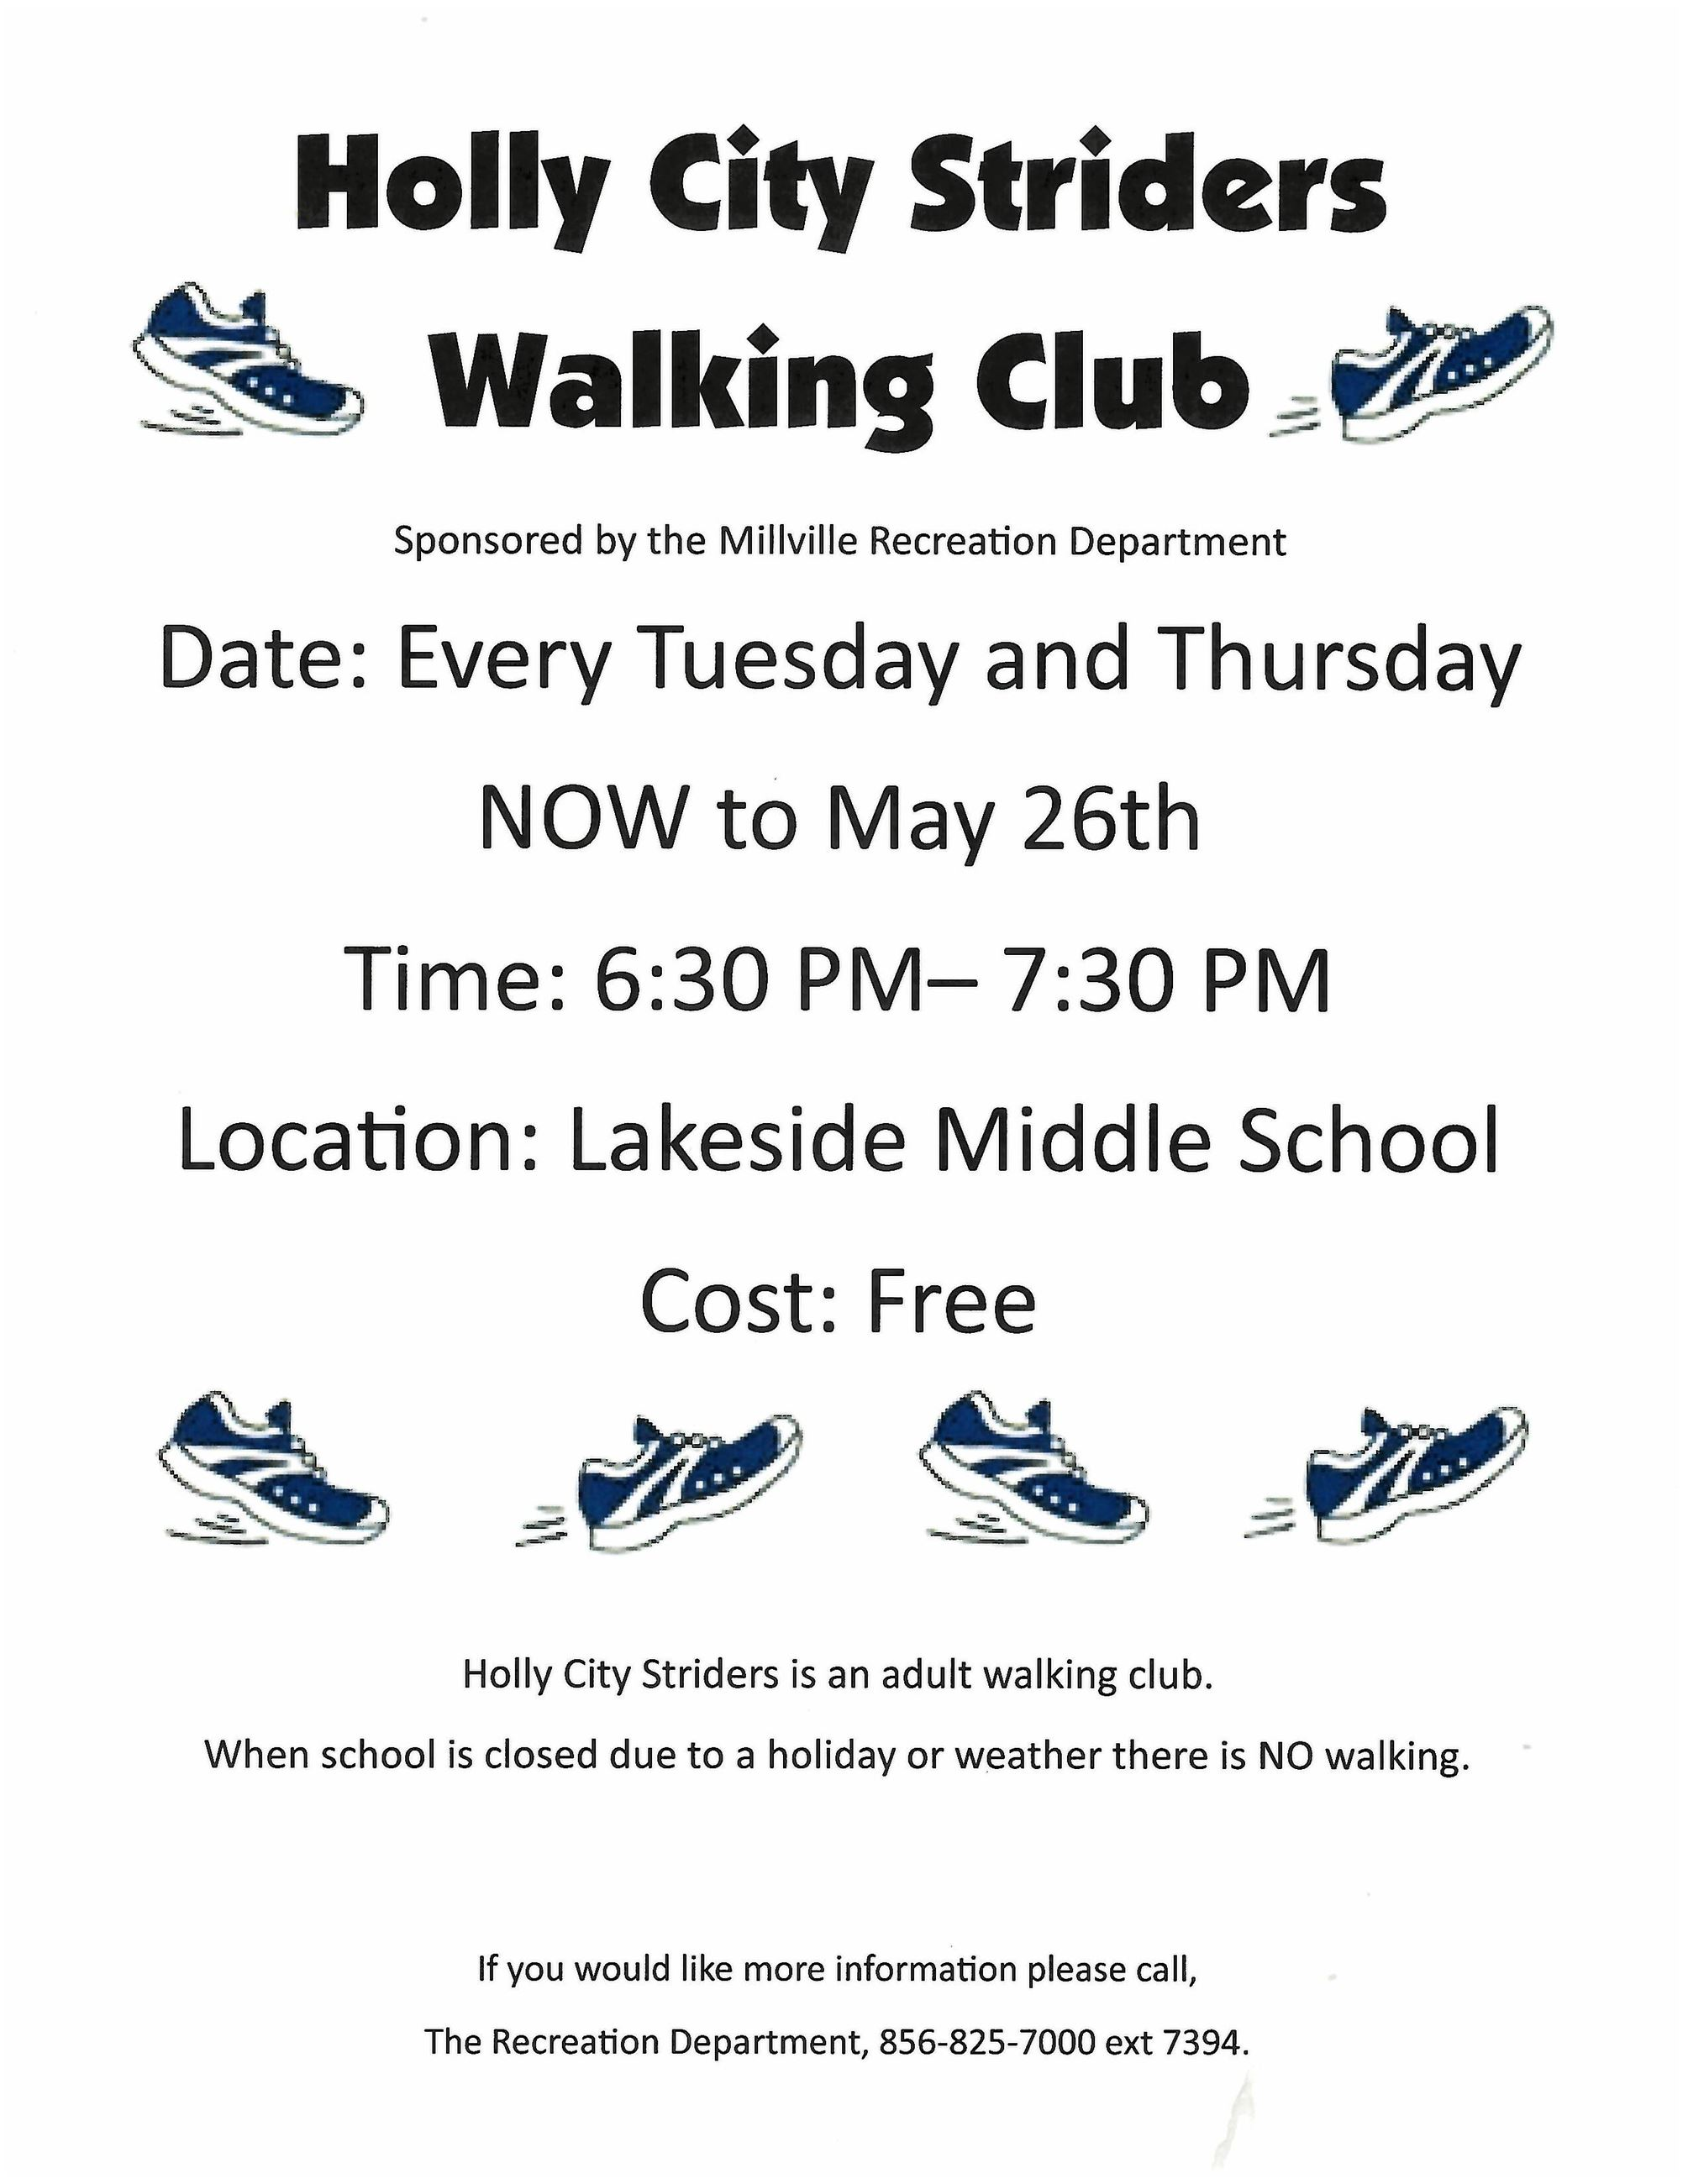 Walking Club20171204